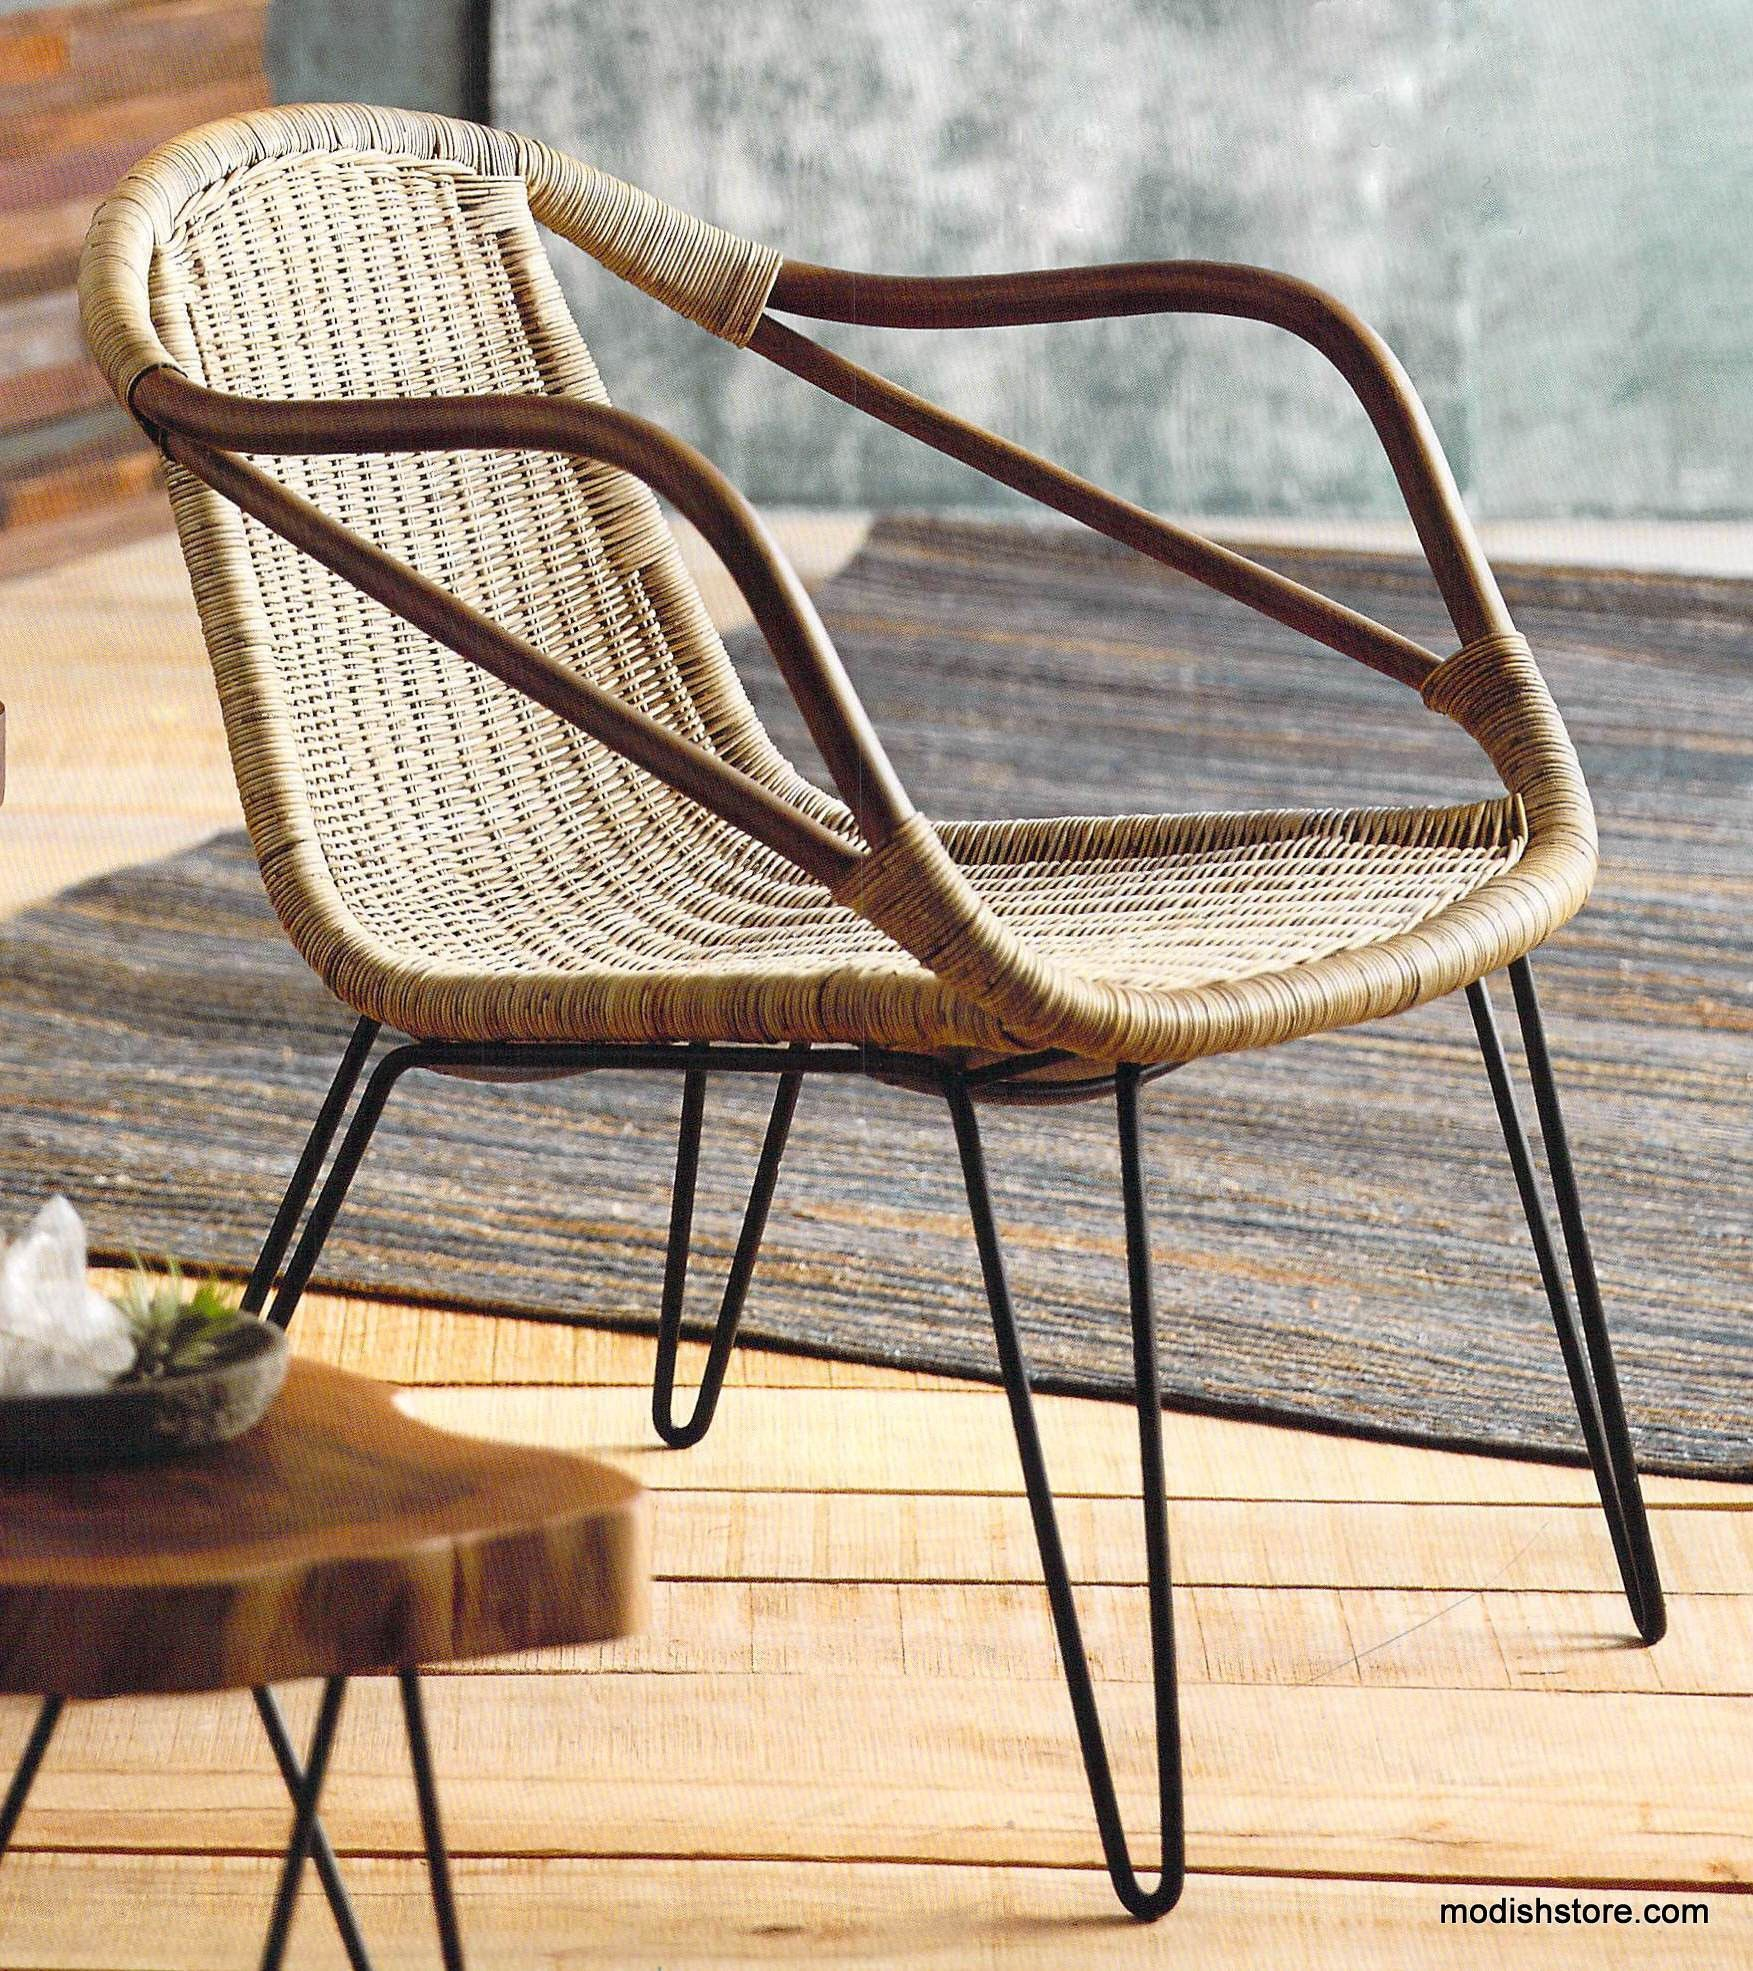 Roost Rapallo Rattan Chair Chair, Rattan furniture